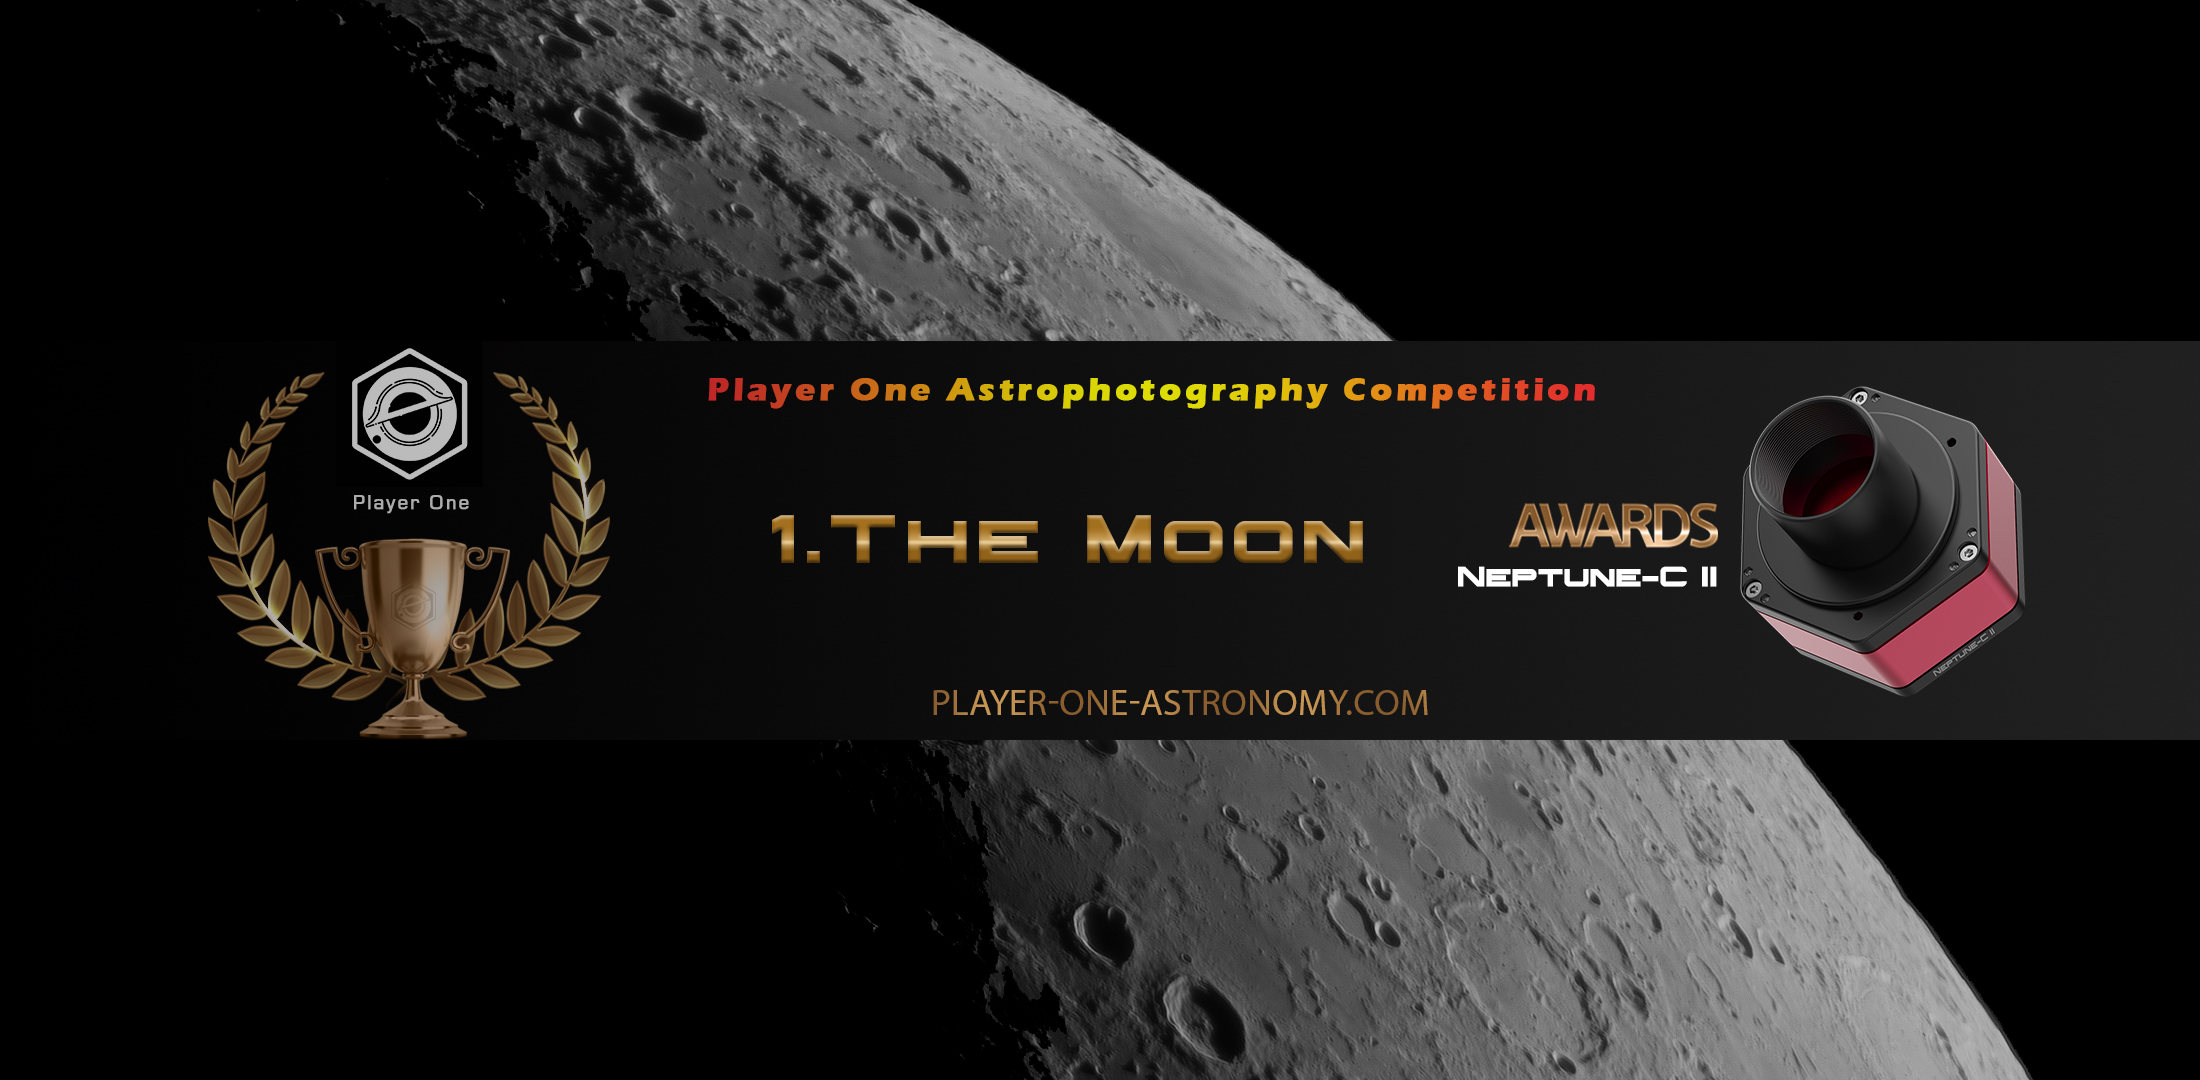 Player One Astrophotography competition Round 1: The Moon